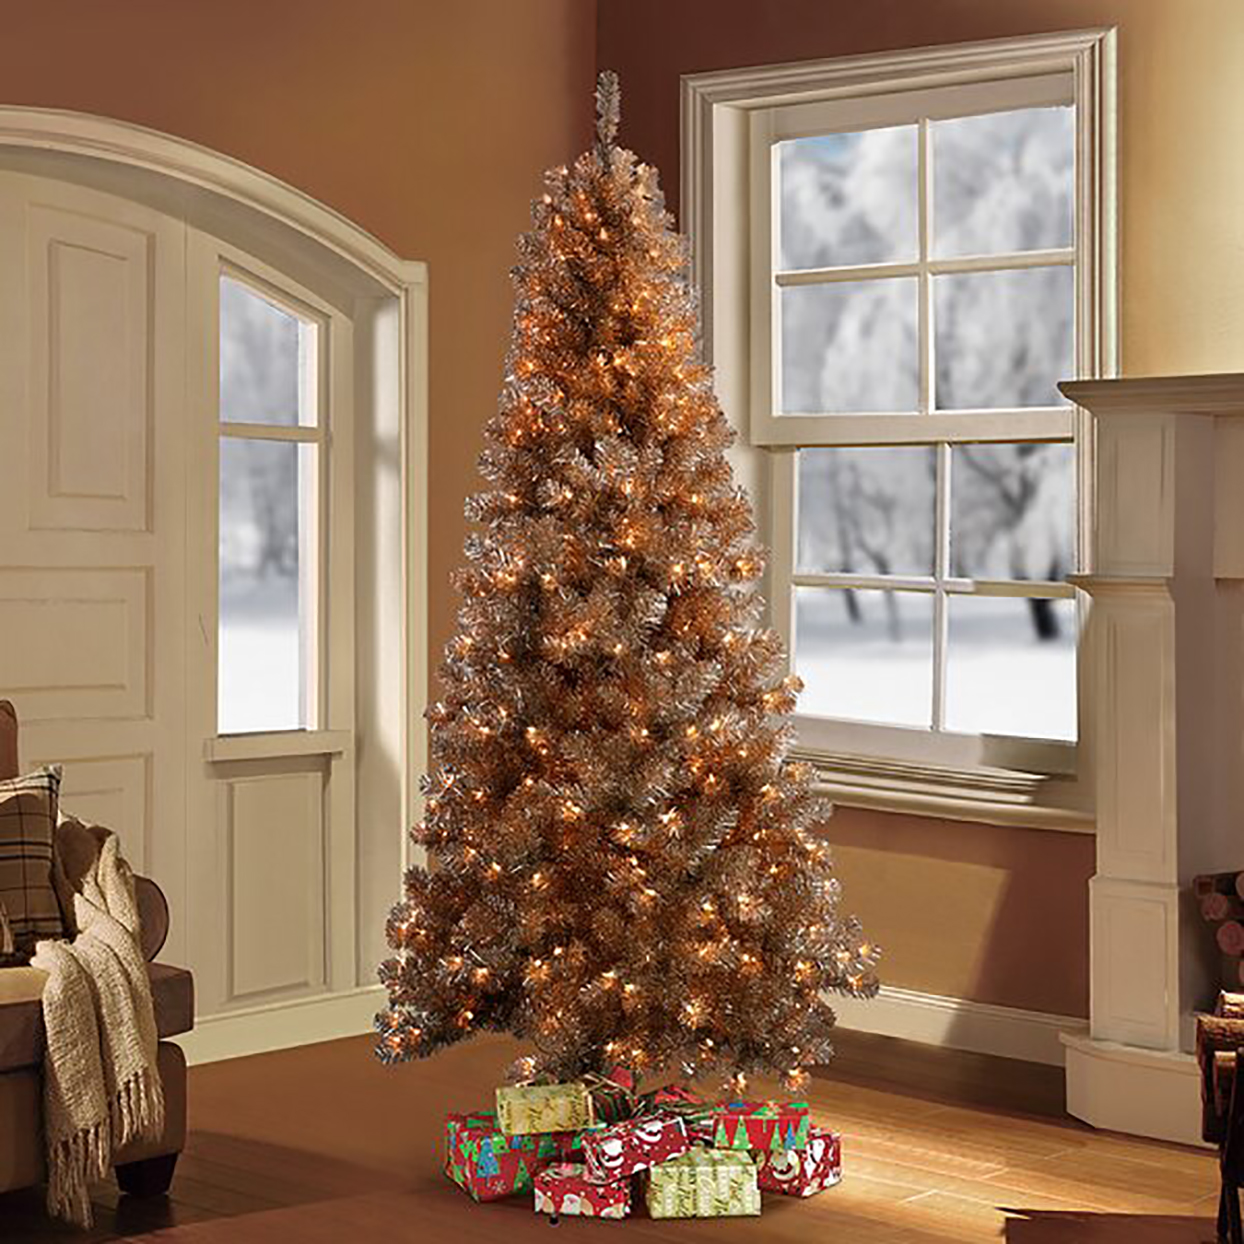 Rose Gold Pine Artificial Christmas Tree with 400 White Light